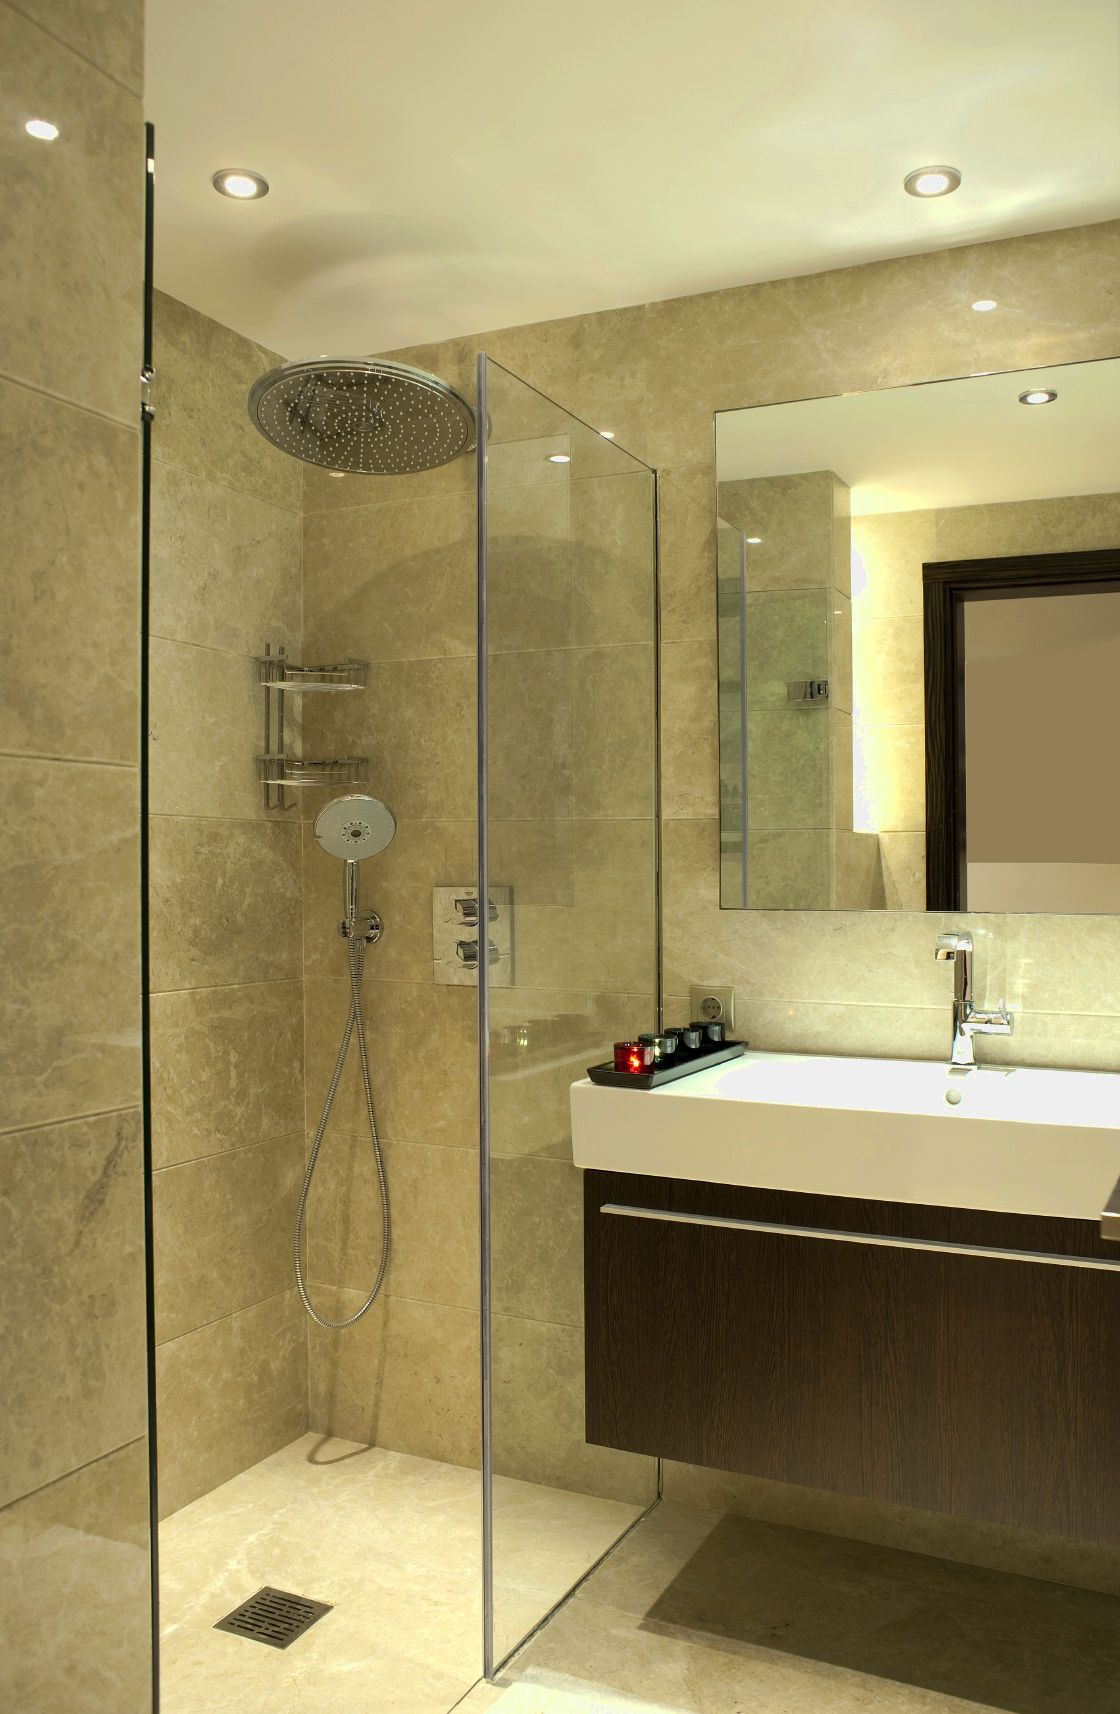 Best Photos, Images, And Pictures Gallery About Ensuite Bathroom Ideas. # Ensuite Bathroom Ideas Small #ensuite Bathroom Ideas Master Bedrooms # Ensuite ...